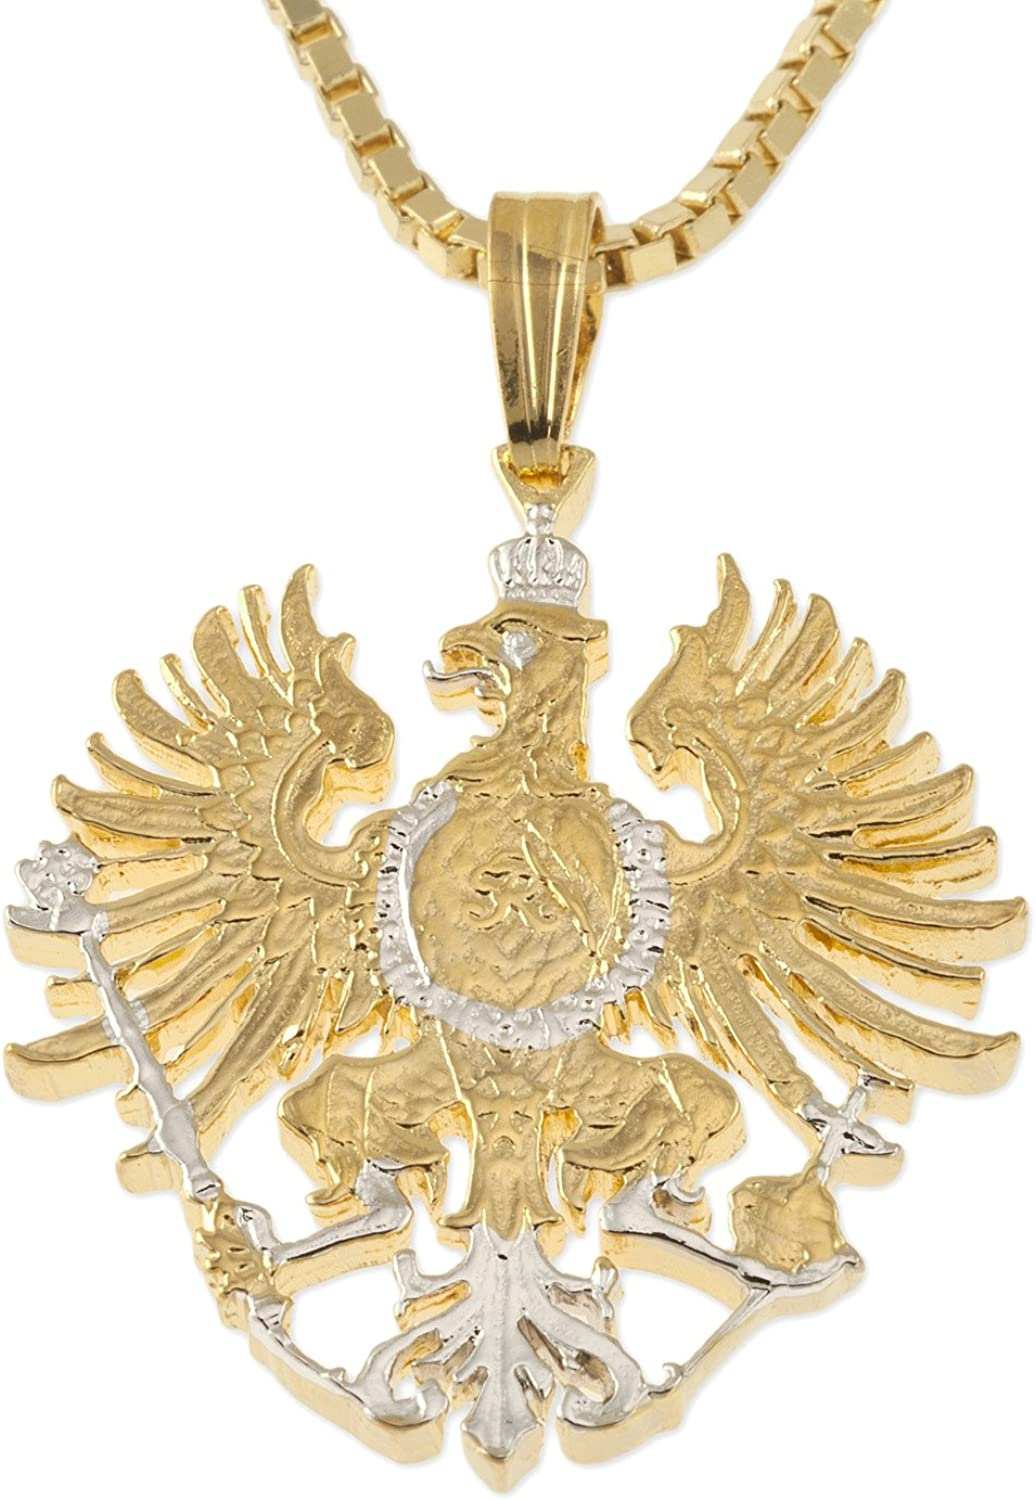 The Difference World Coin Jewelry Germany Pendant & Necklace, German Five Mark Hand Cut